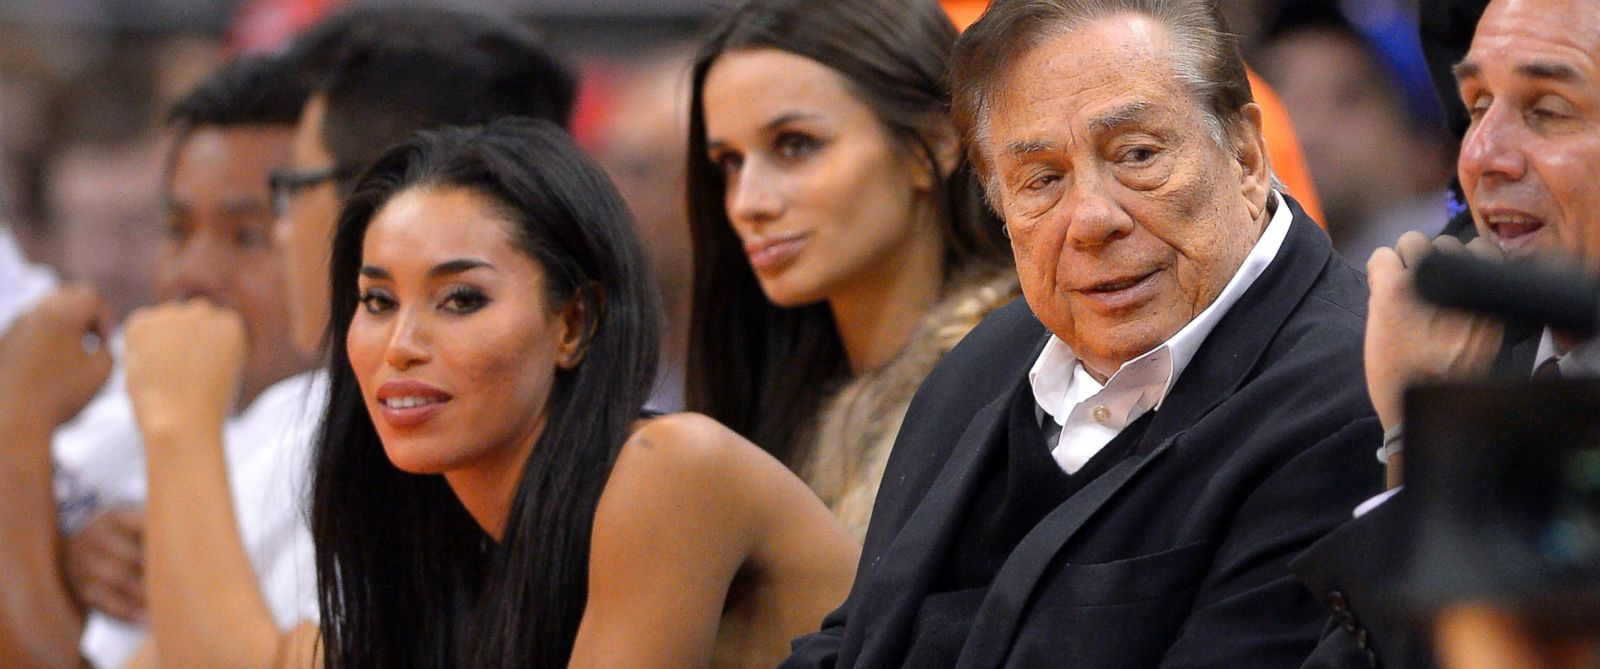 PHOTO: Los Angeles Clippers owner Donald Sterling and V. Stiviano, seated to his right, watch the Clippers play the Sacramento Kings, Oct. 25, 2013, in Los Angeles.